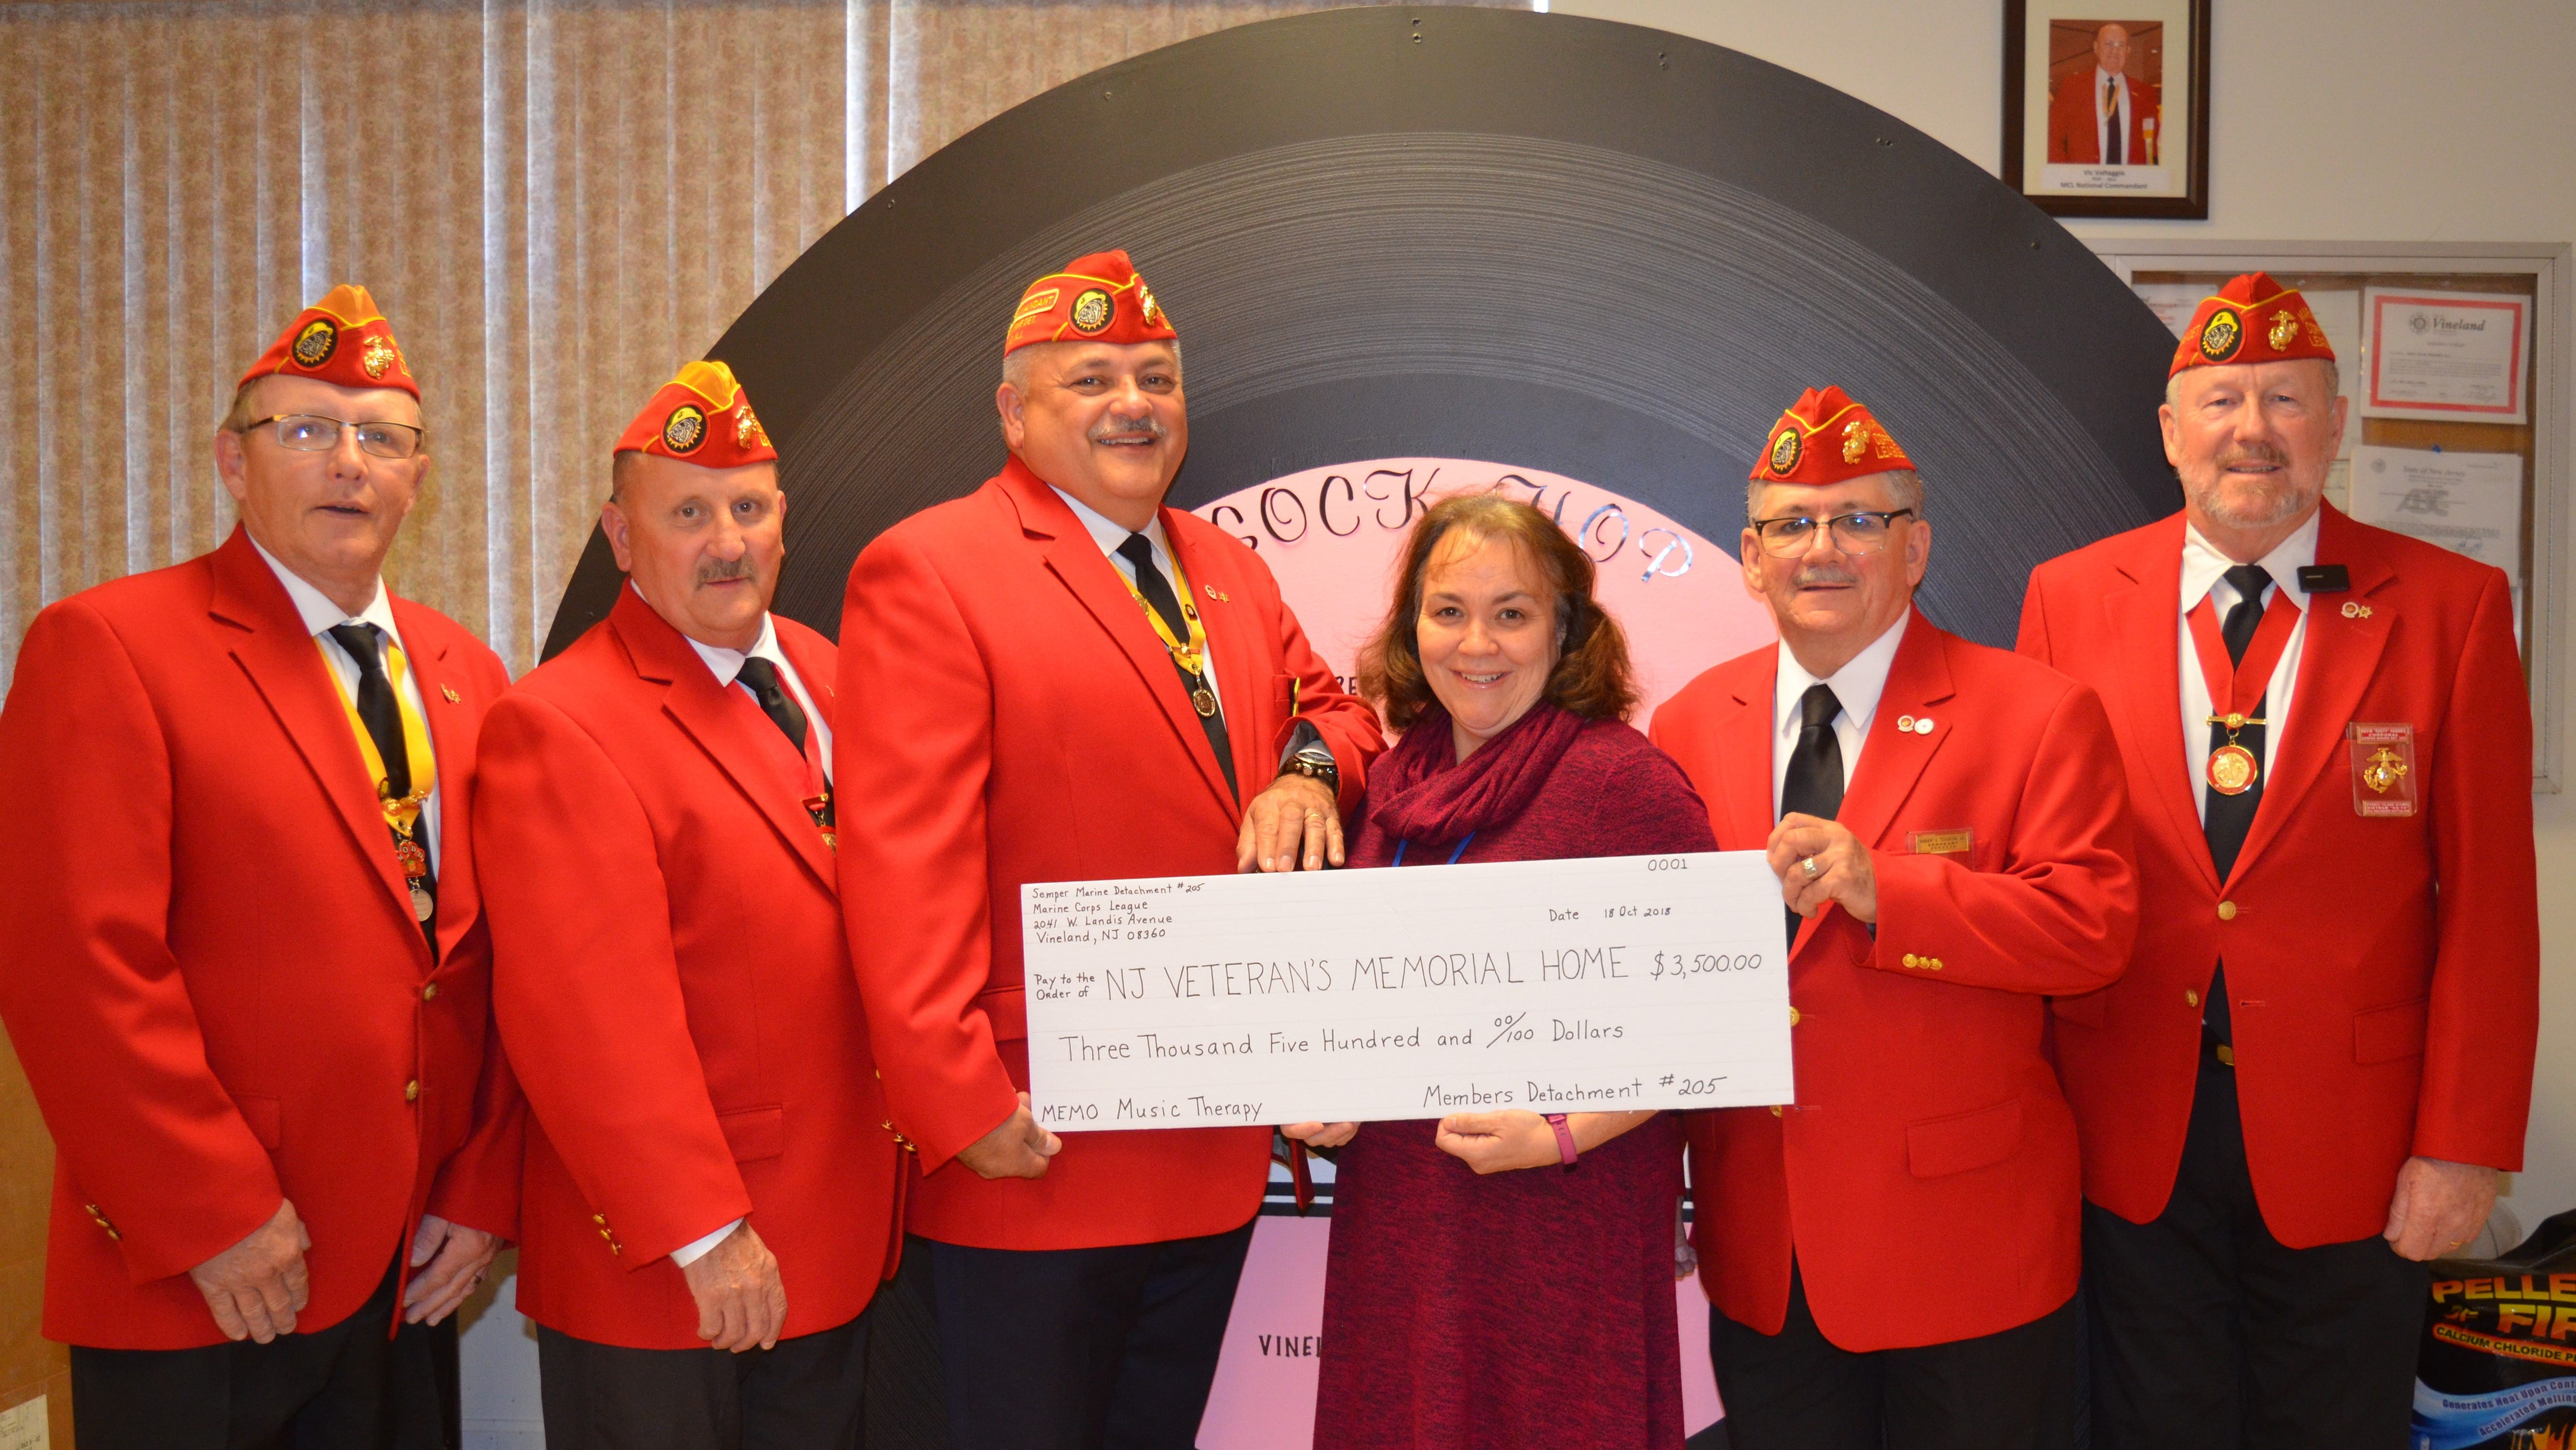 (From left) Dominic Shterban, State Assistant District Vice; Dewey Capriotti, State District Vice; Ed Alicea, Detachment Past Commandant; Lisa Williams, director, volunteer services, New Jersey Veterans Memorial Home; Robert Tesoroni Jr., Sergeant at Arms; and Rusty Hughes, Detachment Security Officer, gathered for the presentation of proceeds, $3,500, from the Sock Hop held by Semper Marine Detachment No. 205, Vineland, to the New Jersey Veterans Memorial Home in Vineland.